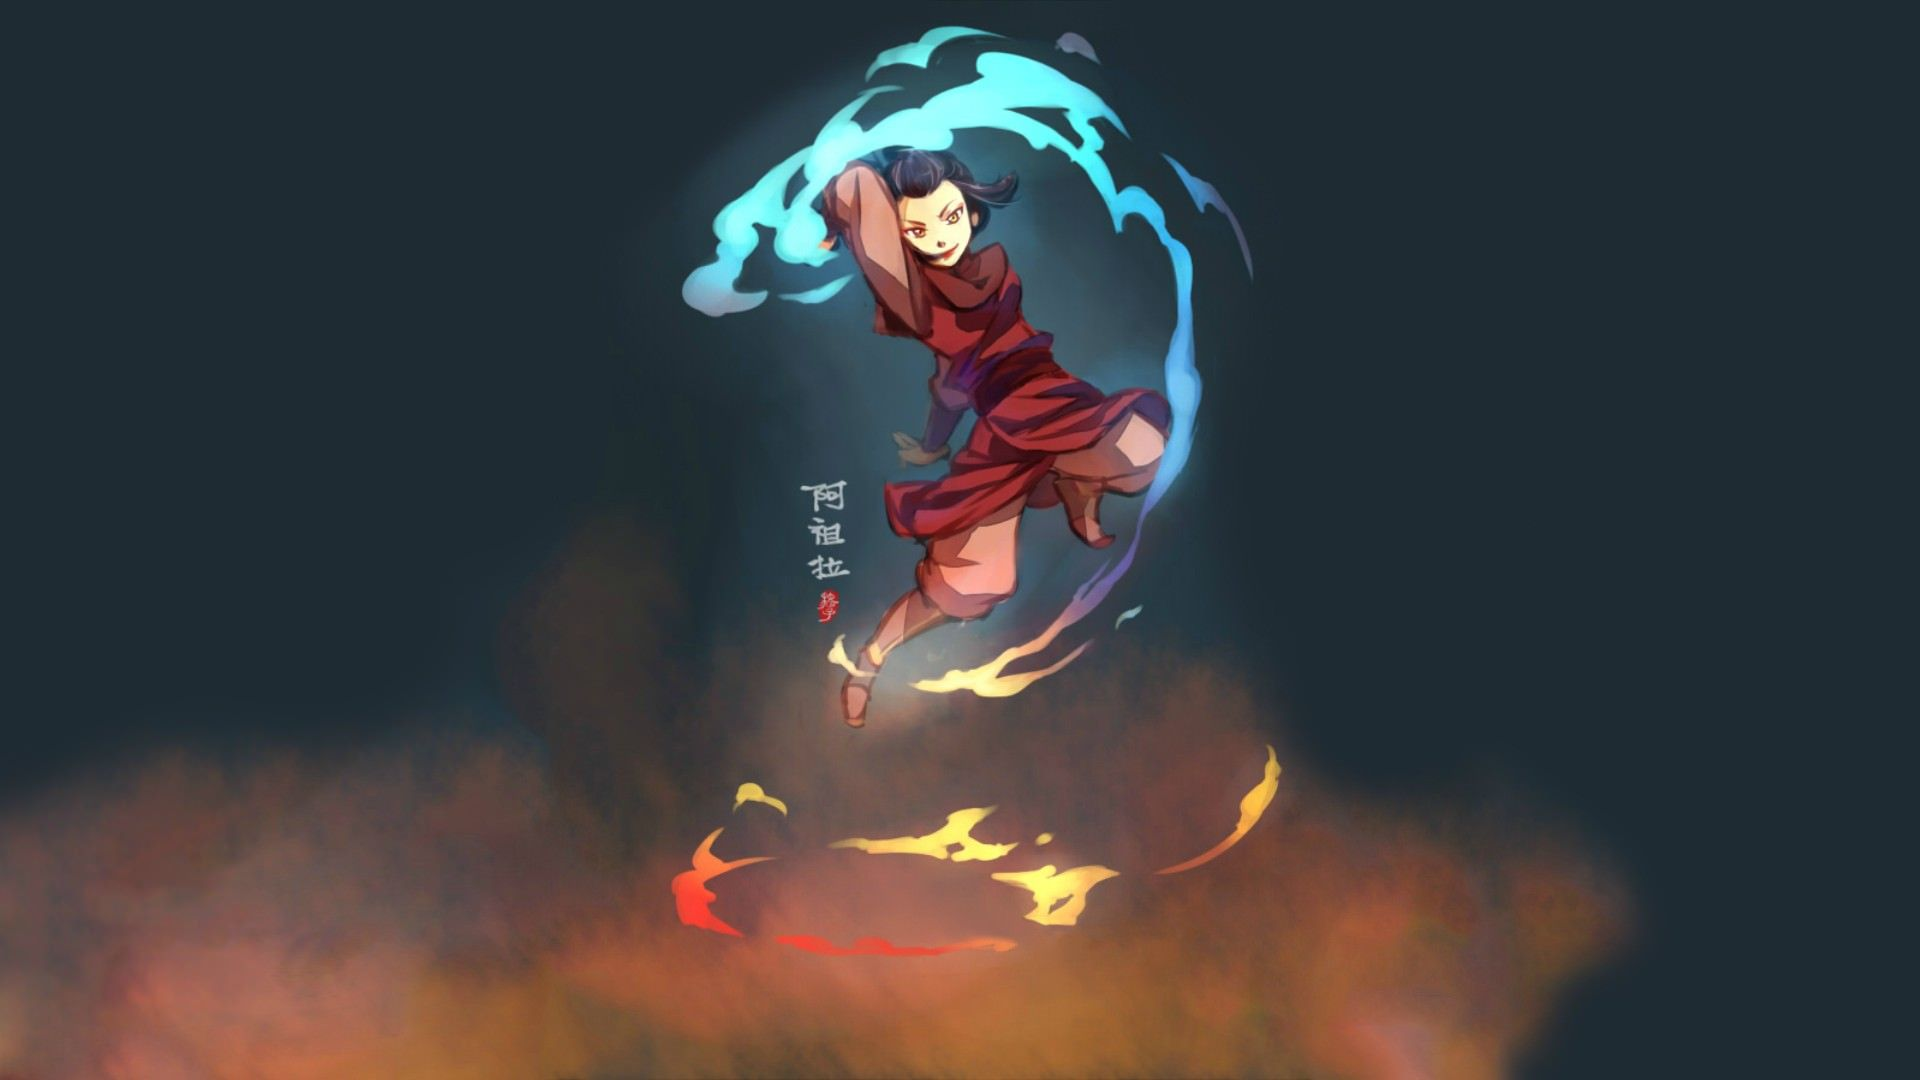 Mobile And Desktop Wallpaper Hd Avatar The Last Airbender The Last Airbender Avatar